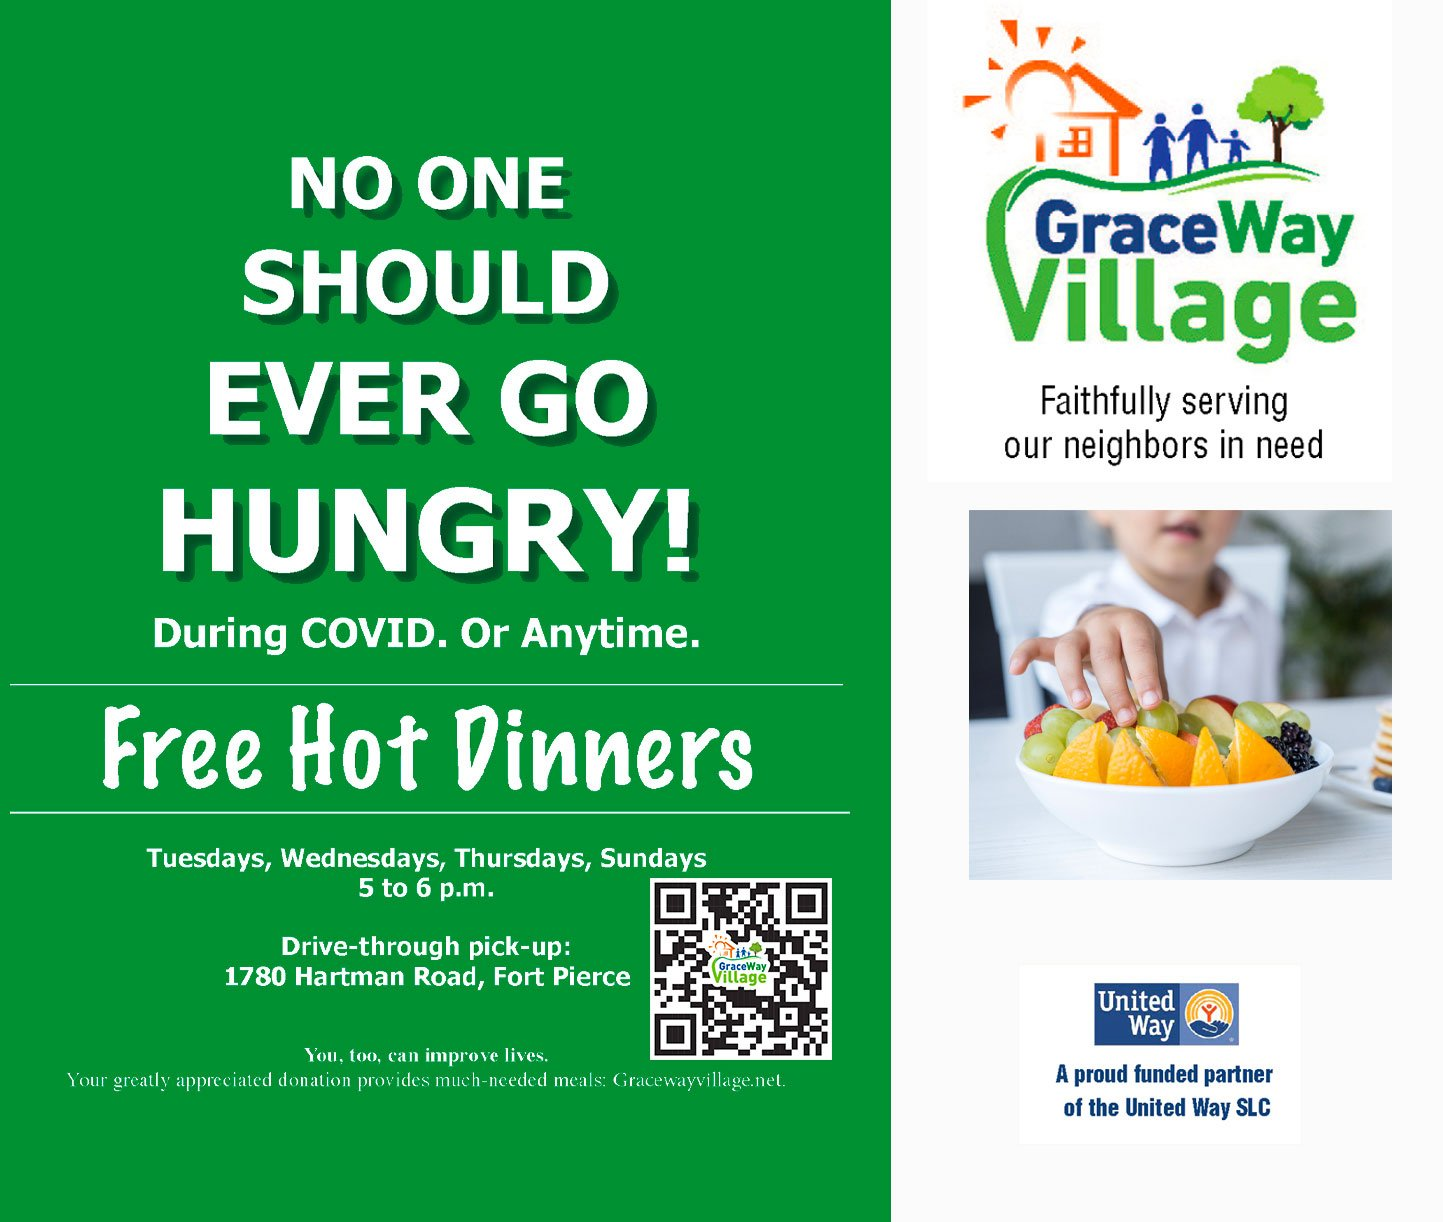 graceway village feed the hungry